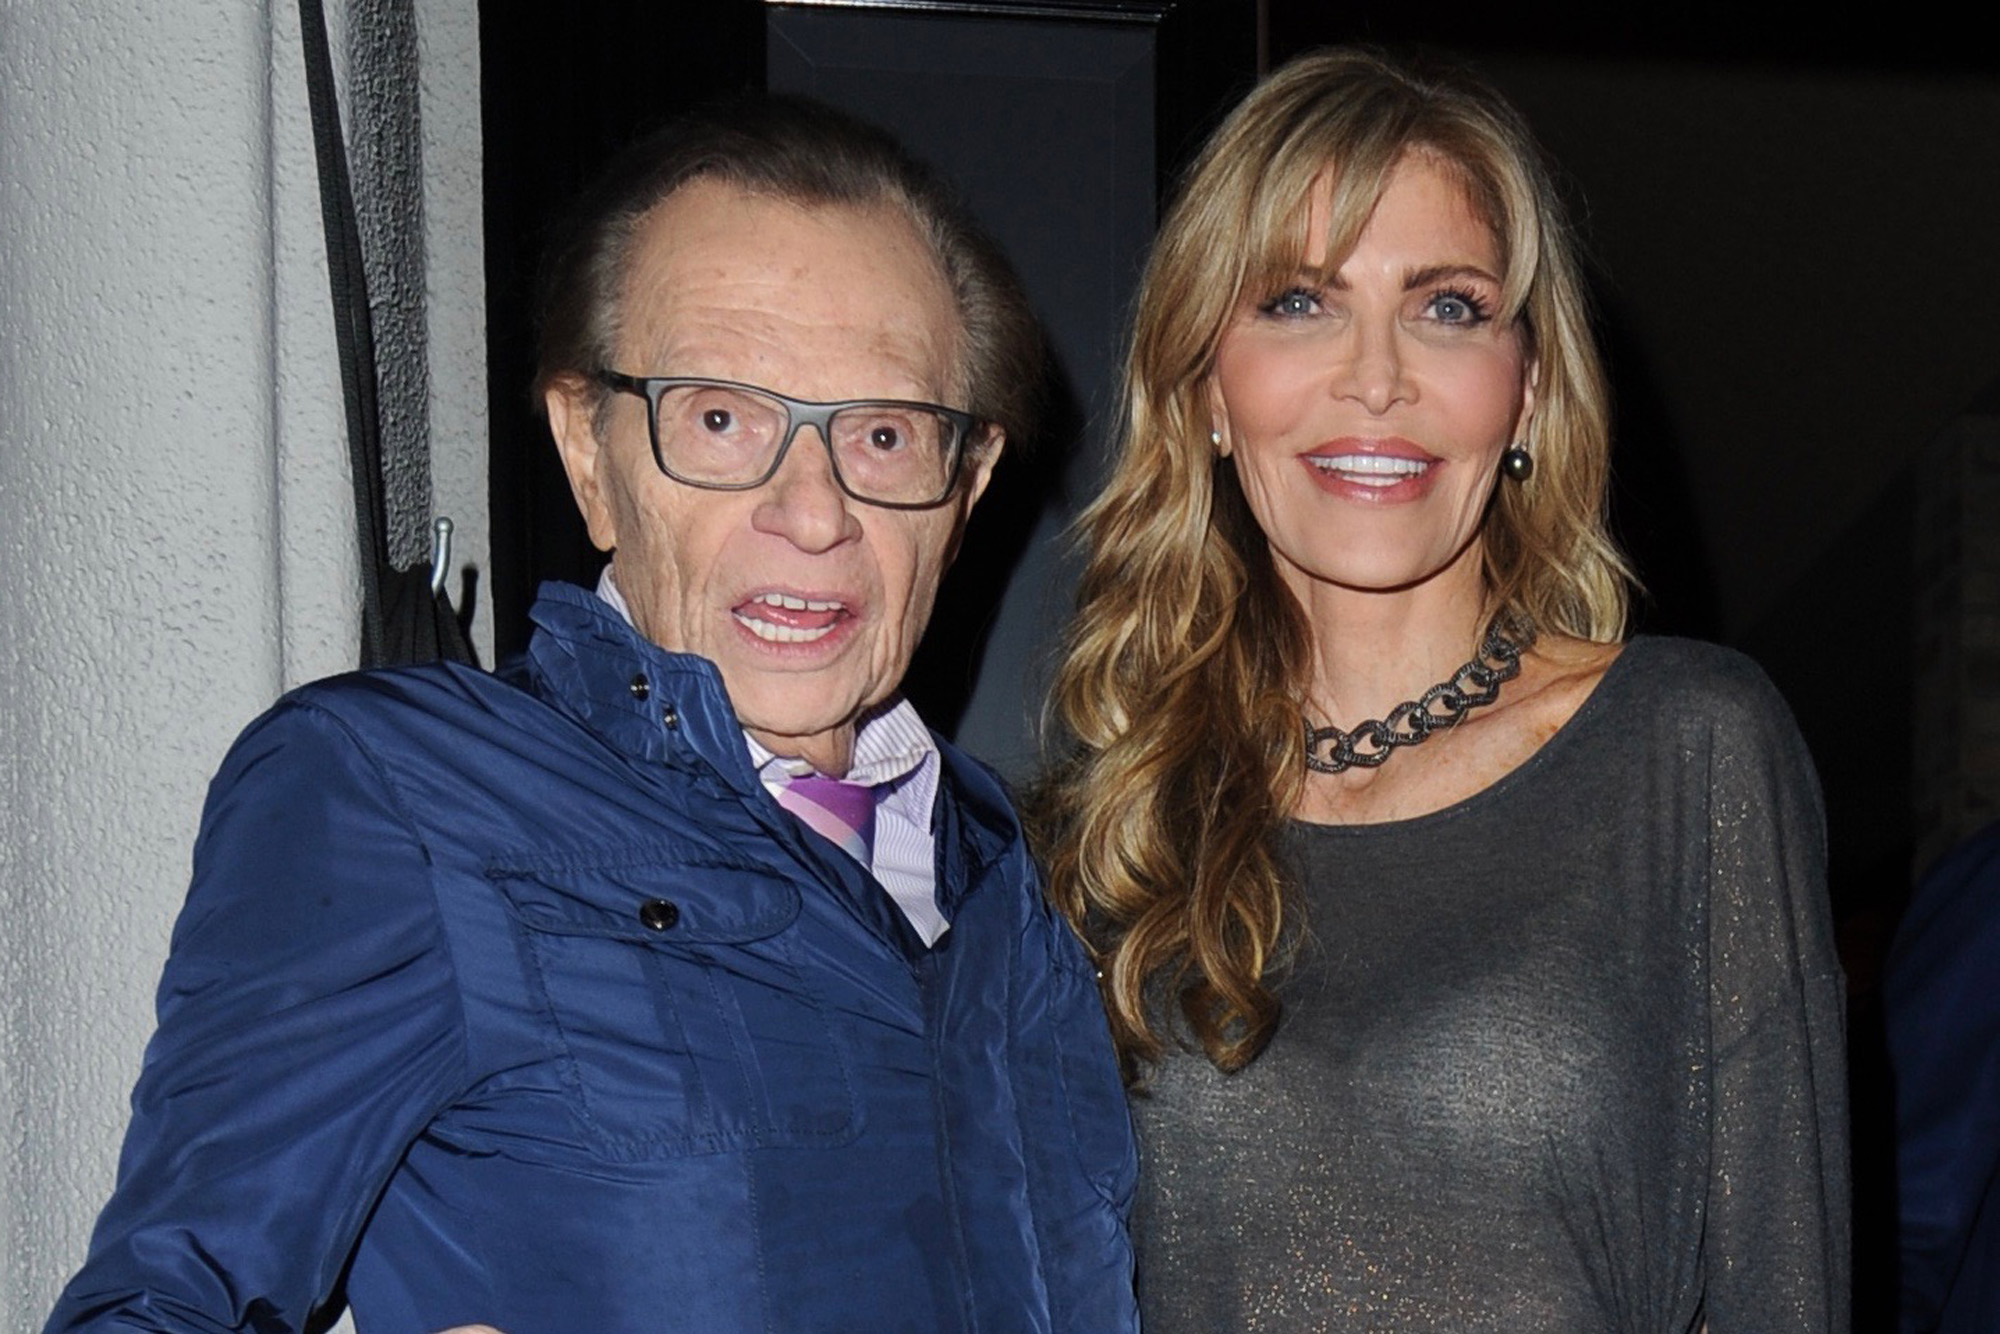 Larry King S Estranged Wife Seeks 33k A Month In Spousal Support